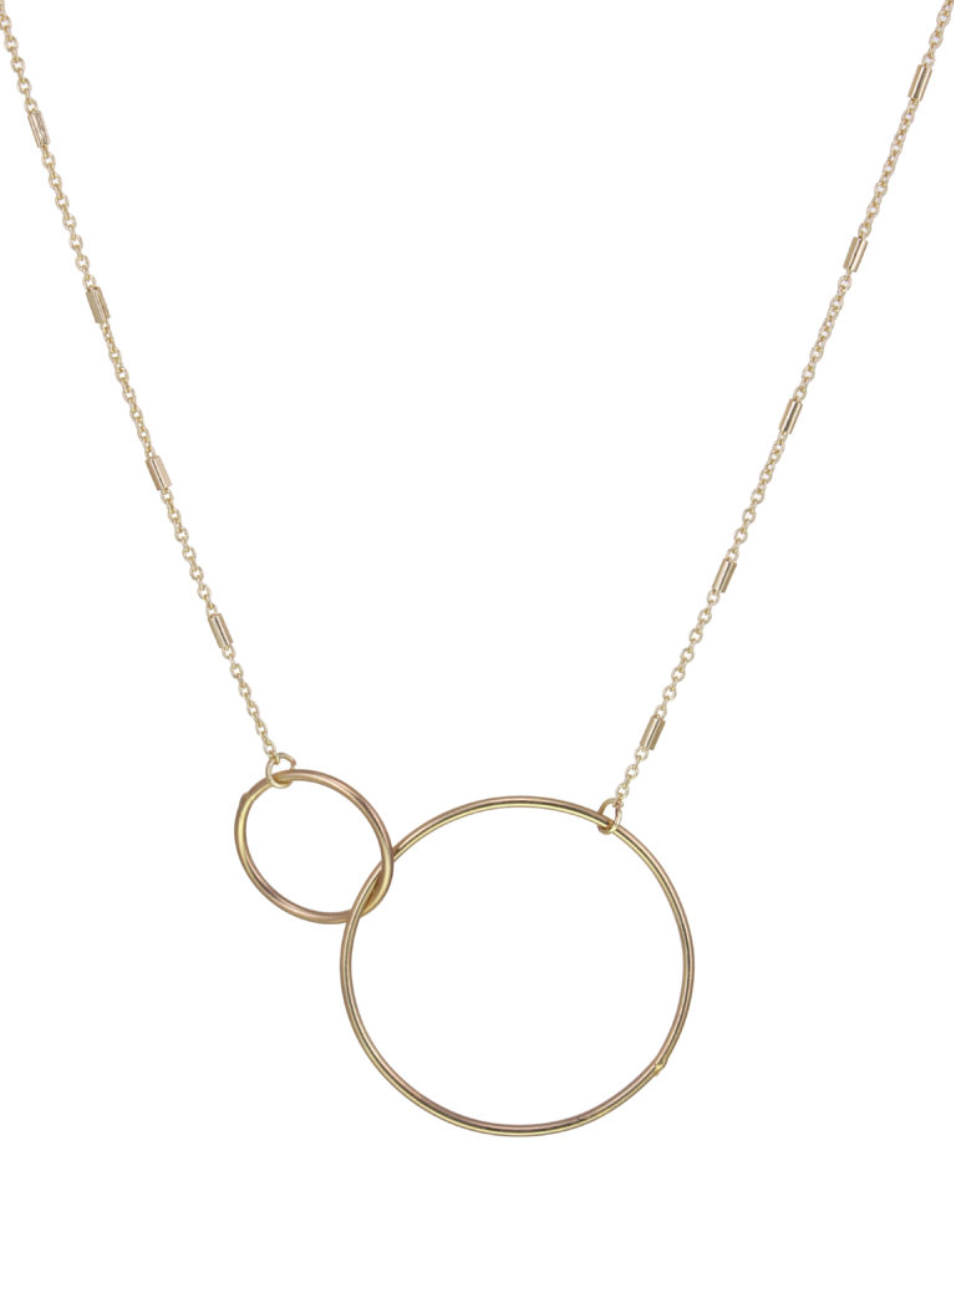 Gold Interlocking Rings Necklace